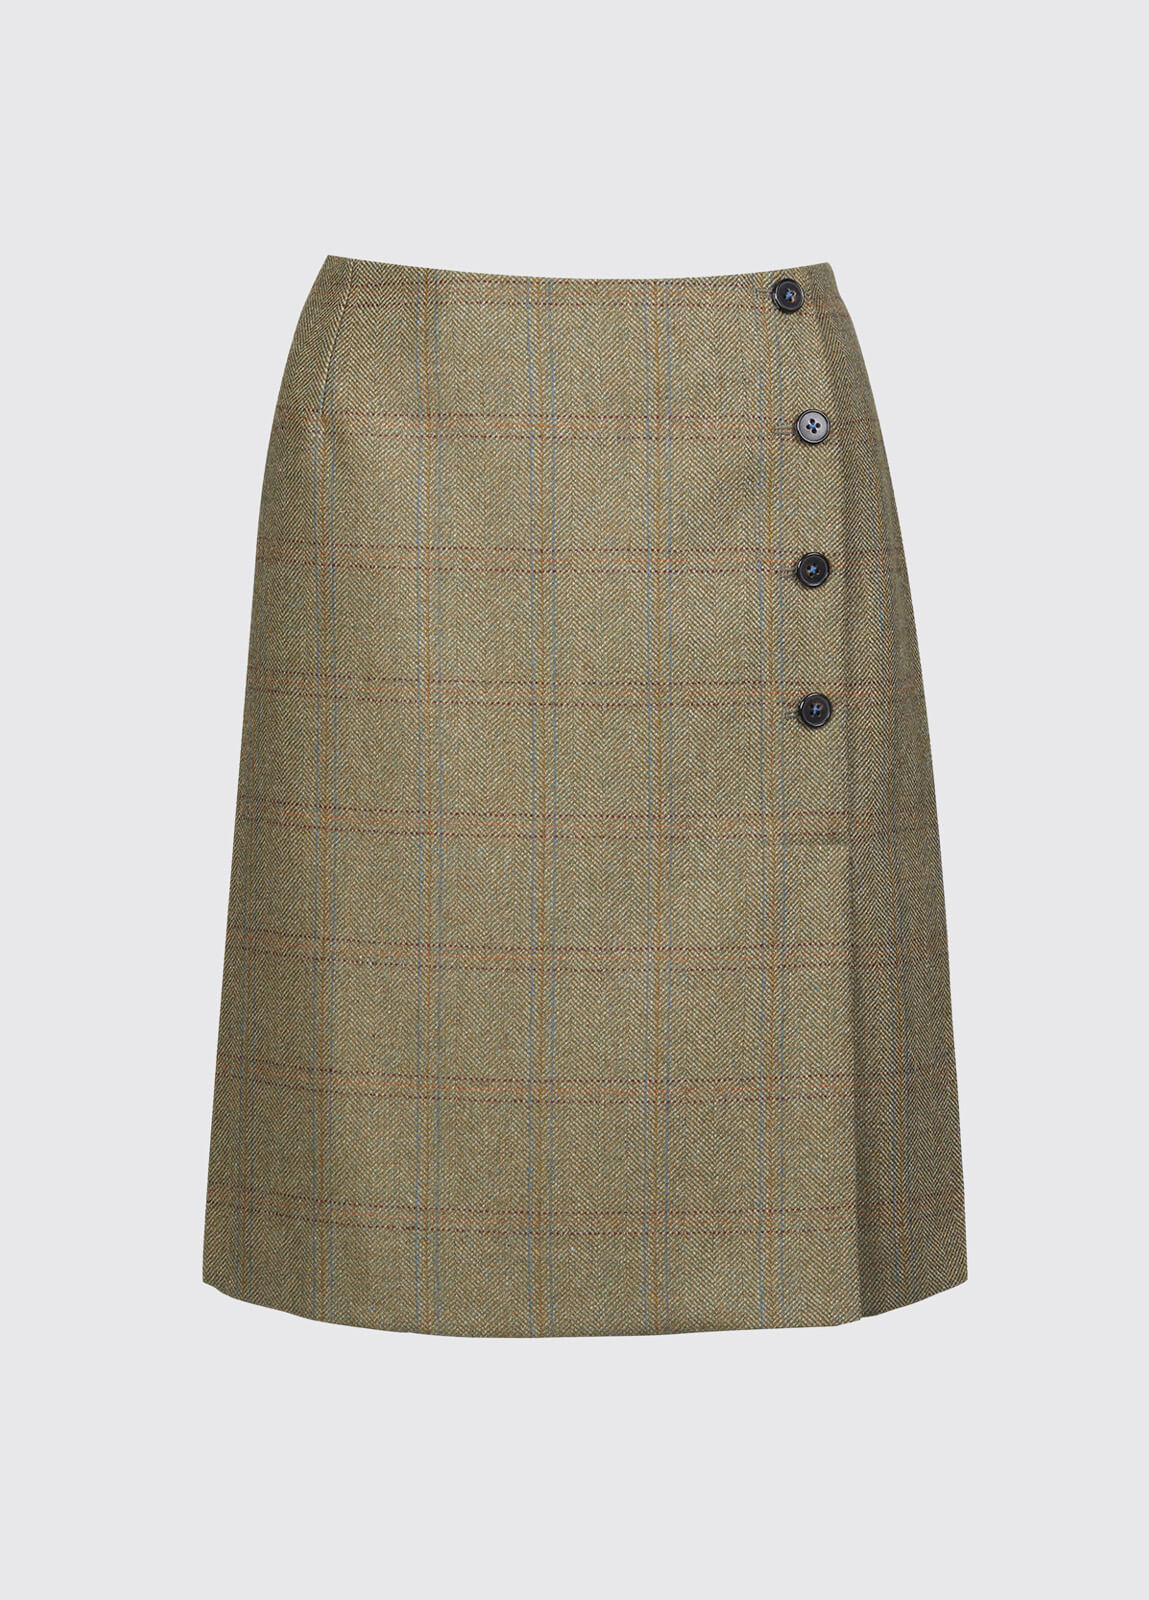 Marjoram Slim Tweed Skirt - Acorn